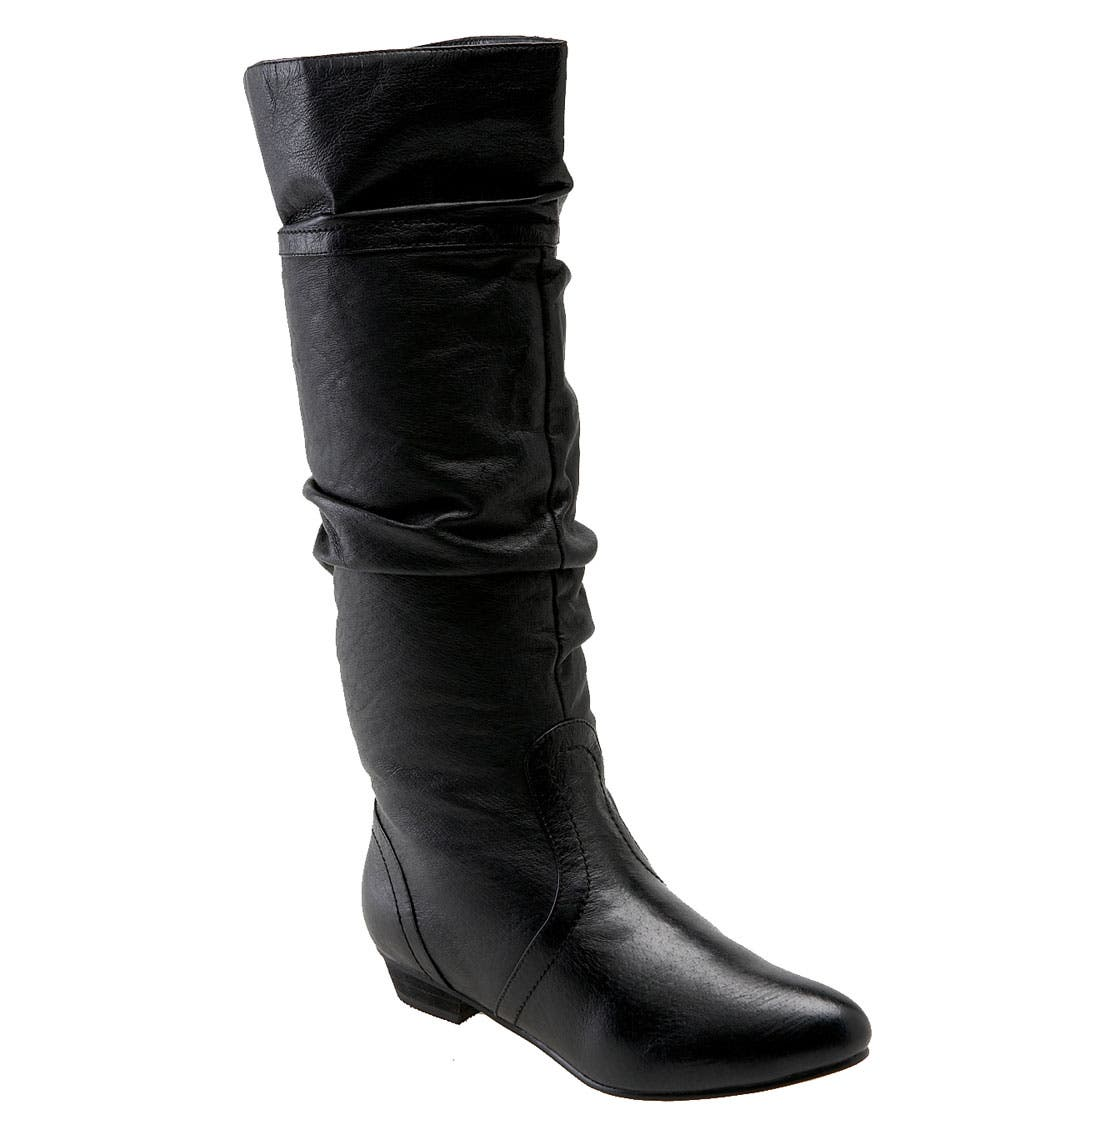 Alternate Image 1 Selected - Steve Madden 'Candence' Boot